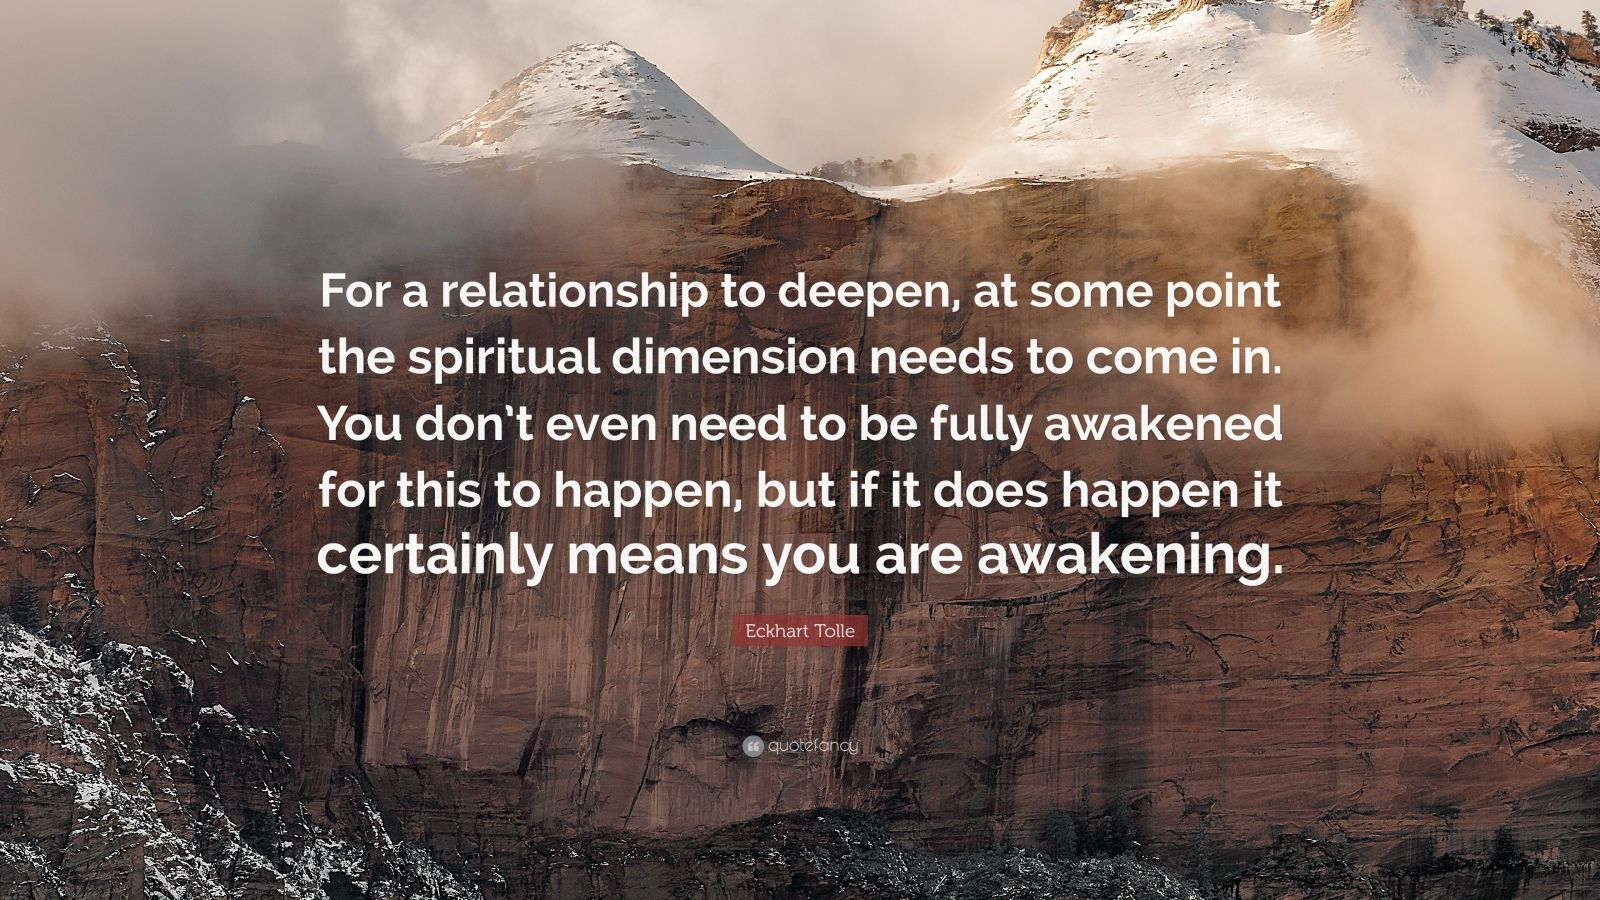 "Eckhart Tolle Quote: ""For a relationship to deepen, at some point the spiritual dimension needs to come in. You don't even need to be fully awakened for this to happen, but if it does happen it certainly means you are awakening."""